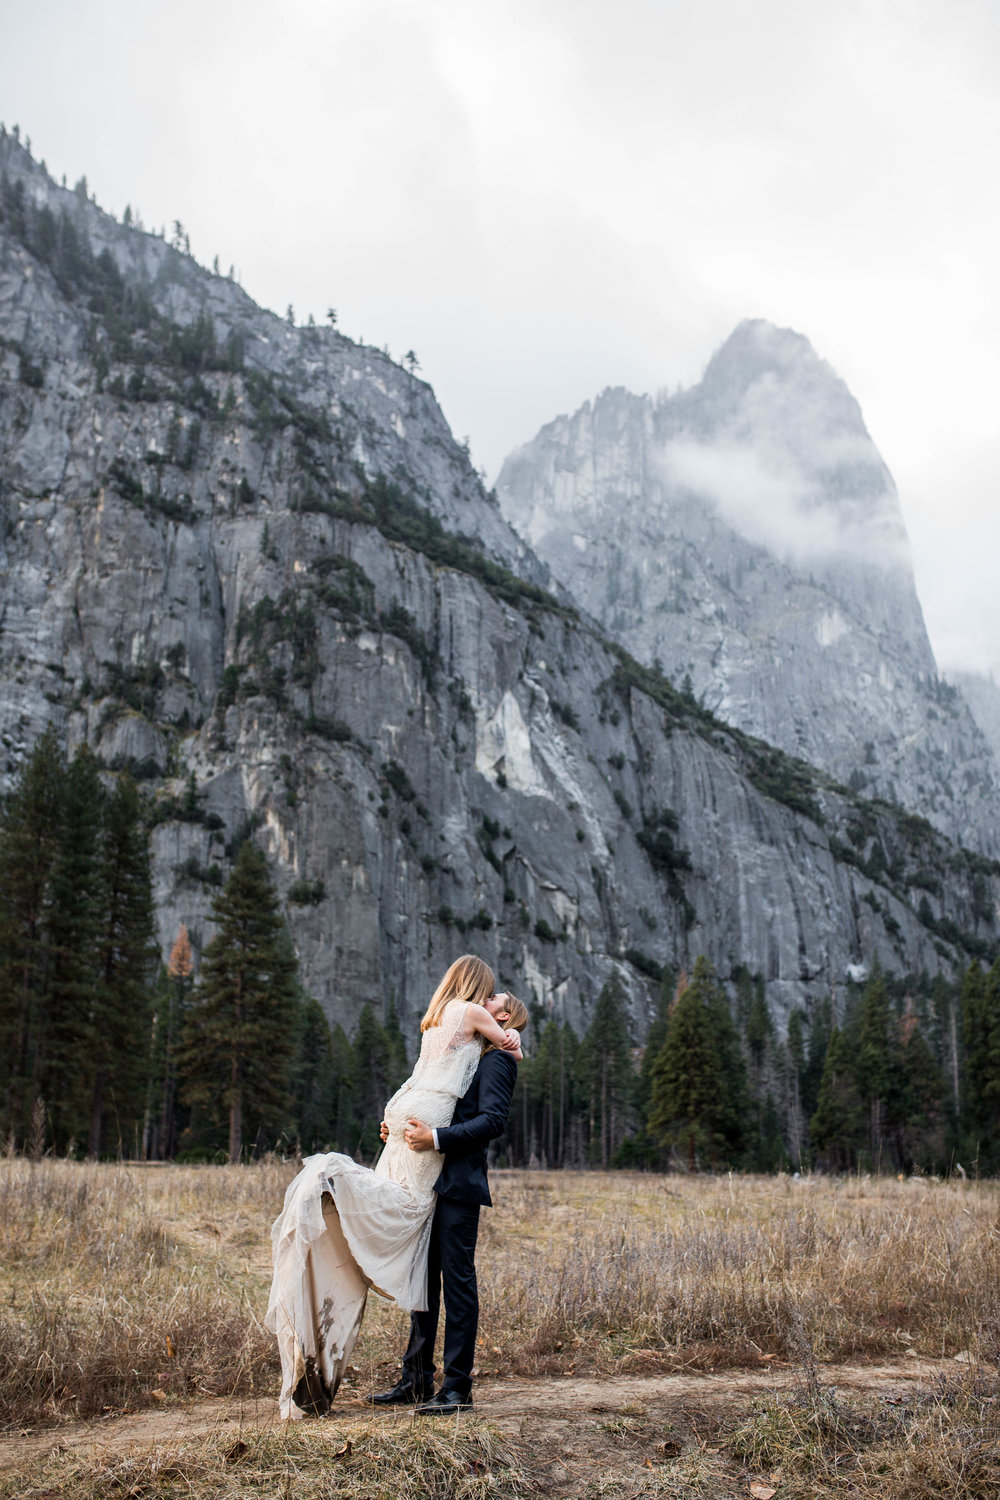 Nicole-Daacke-Photography-Adventurous-Elopement-Intimiate-Wedding-Destination-Wedding-Yosemite-National-Park-Laid-Back-Love-Photographer-13.jpg